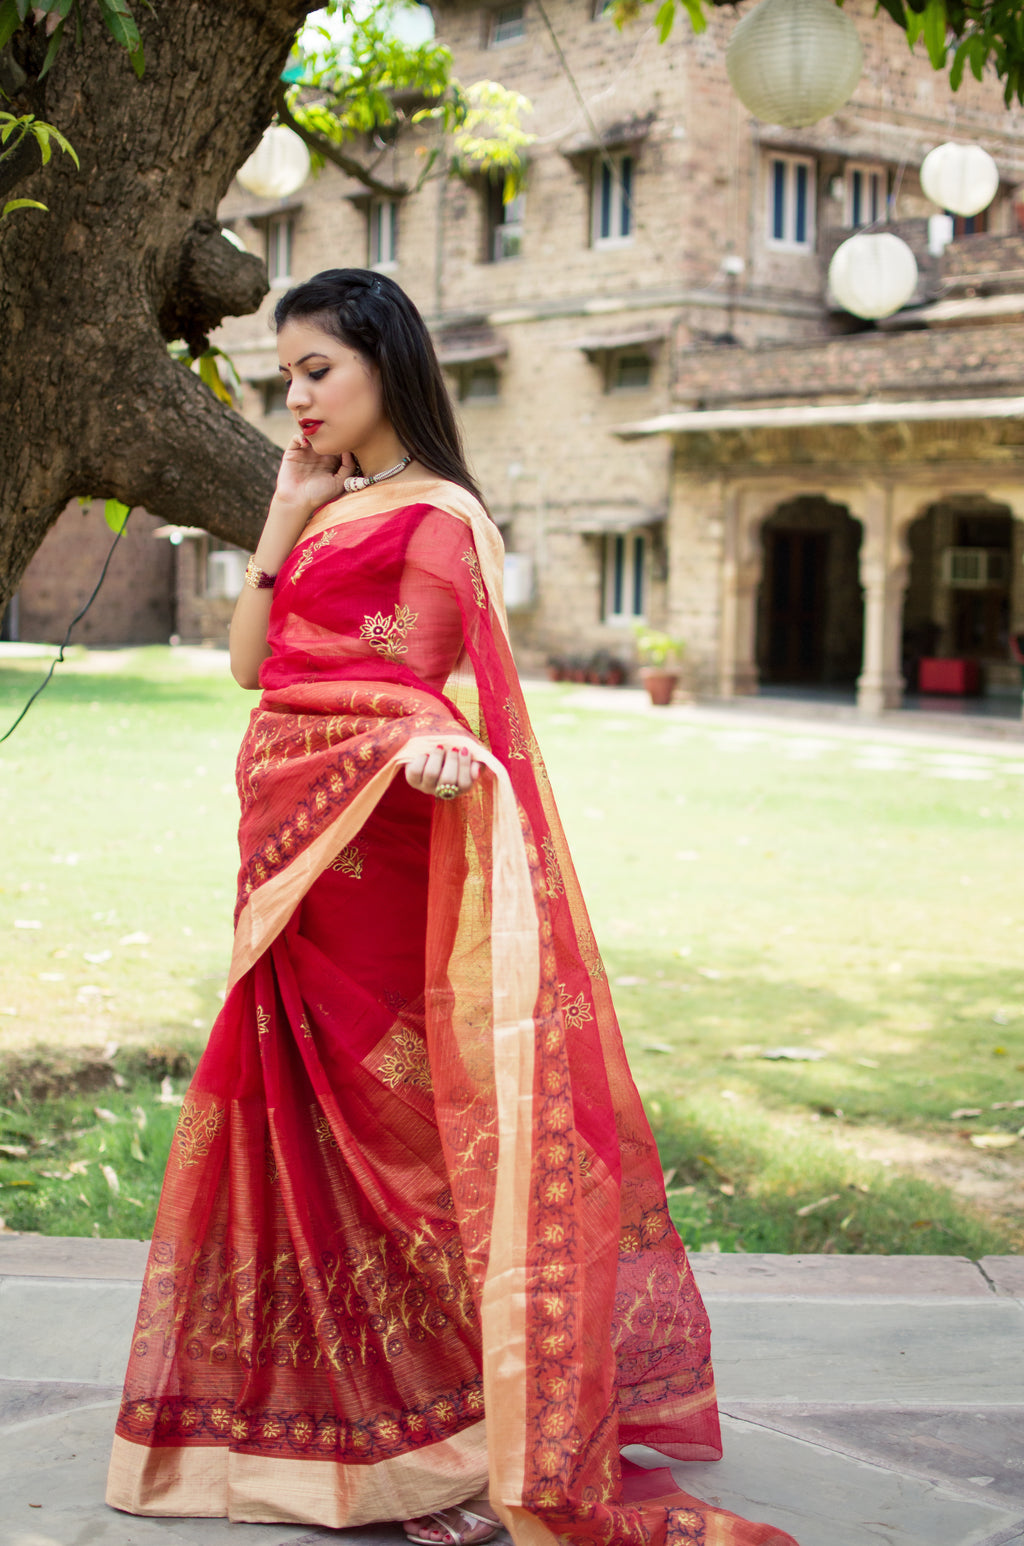 Aachho-Saree-Red Golden Hand Block Zari Doriya Saree